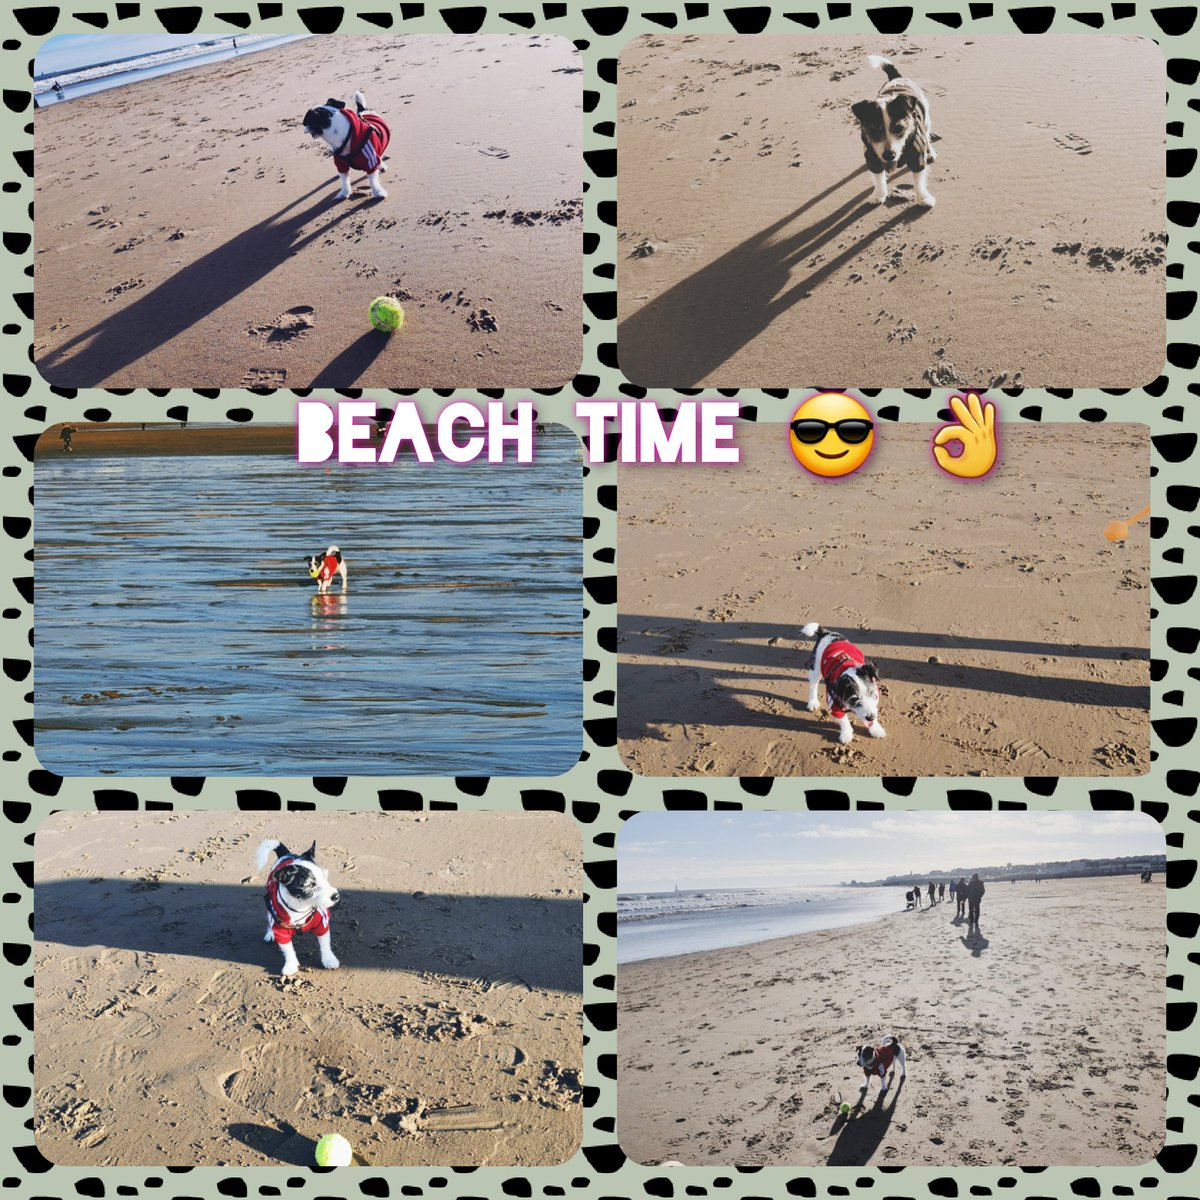 #COVID19  #lockdown2021  Beach time but of exercise and  #relaxation  #SaturdayVibes #saturdaymood got me really  good. We all needed   fresh air and less being stressed and  focus on wellbeing and  health. #medidation